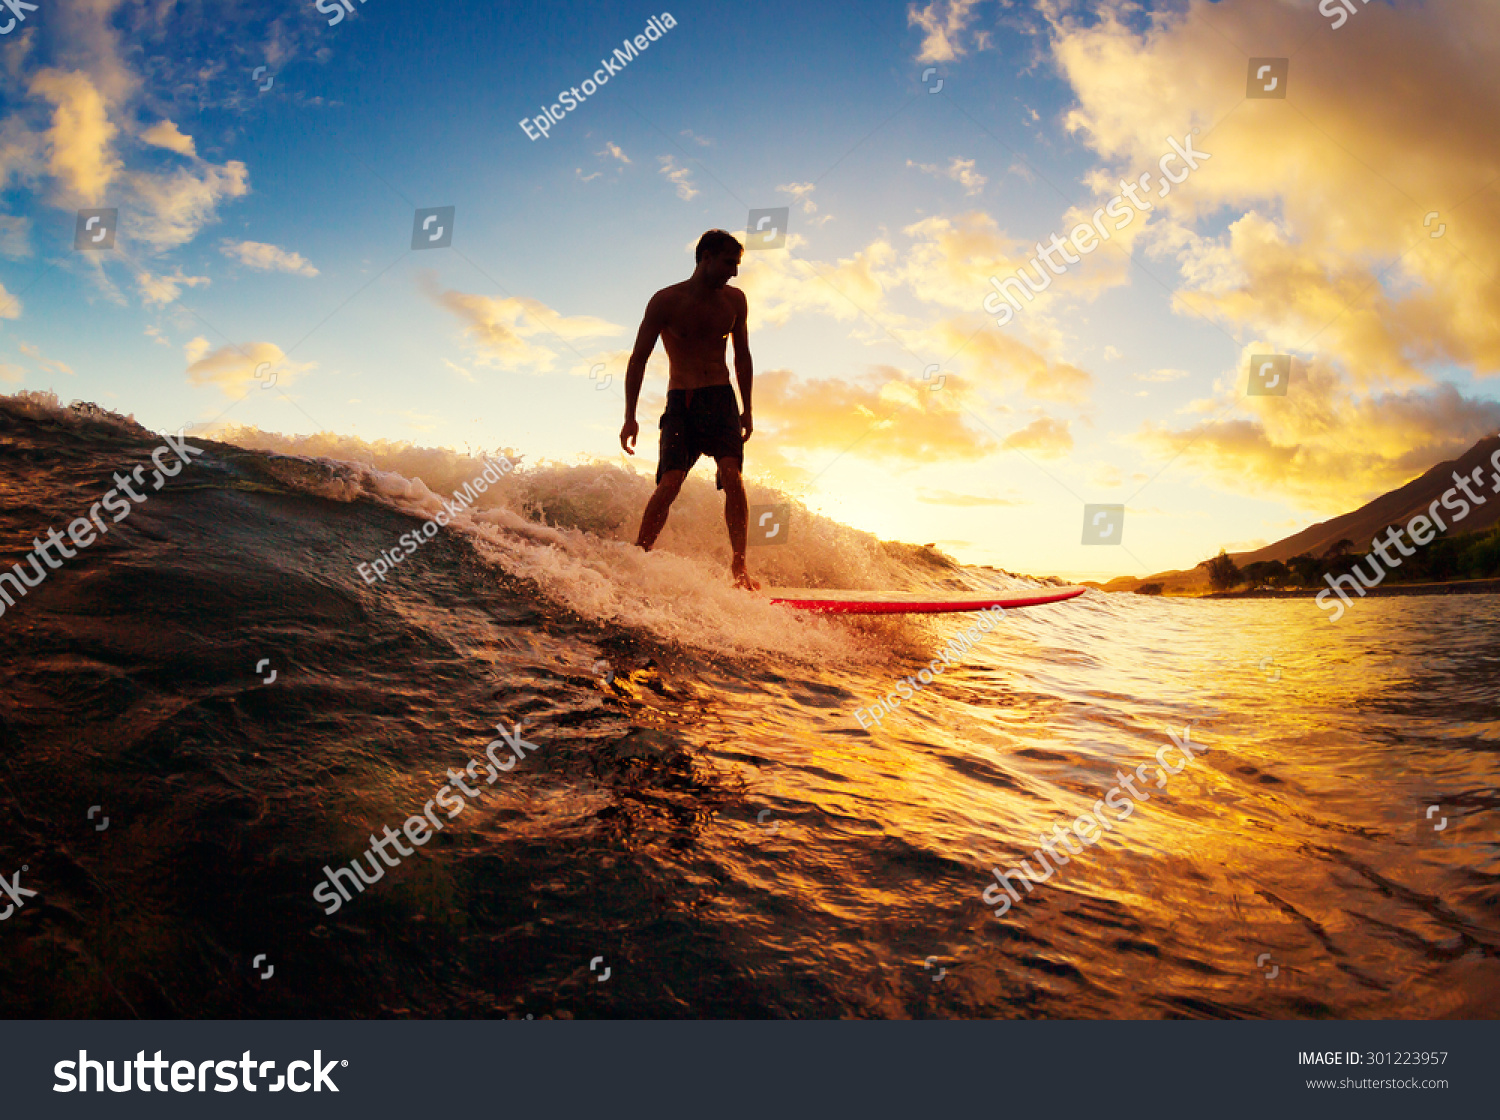 Surfing At Sunset. Young Man Riding Wave At Sunset ...